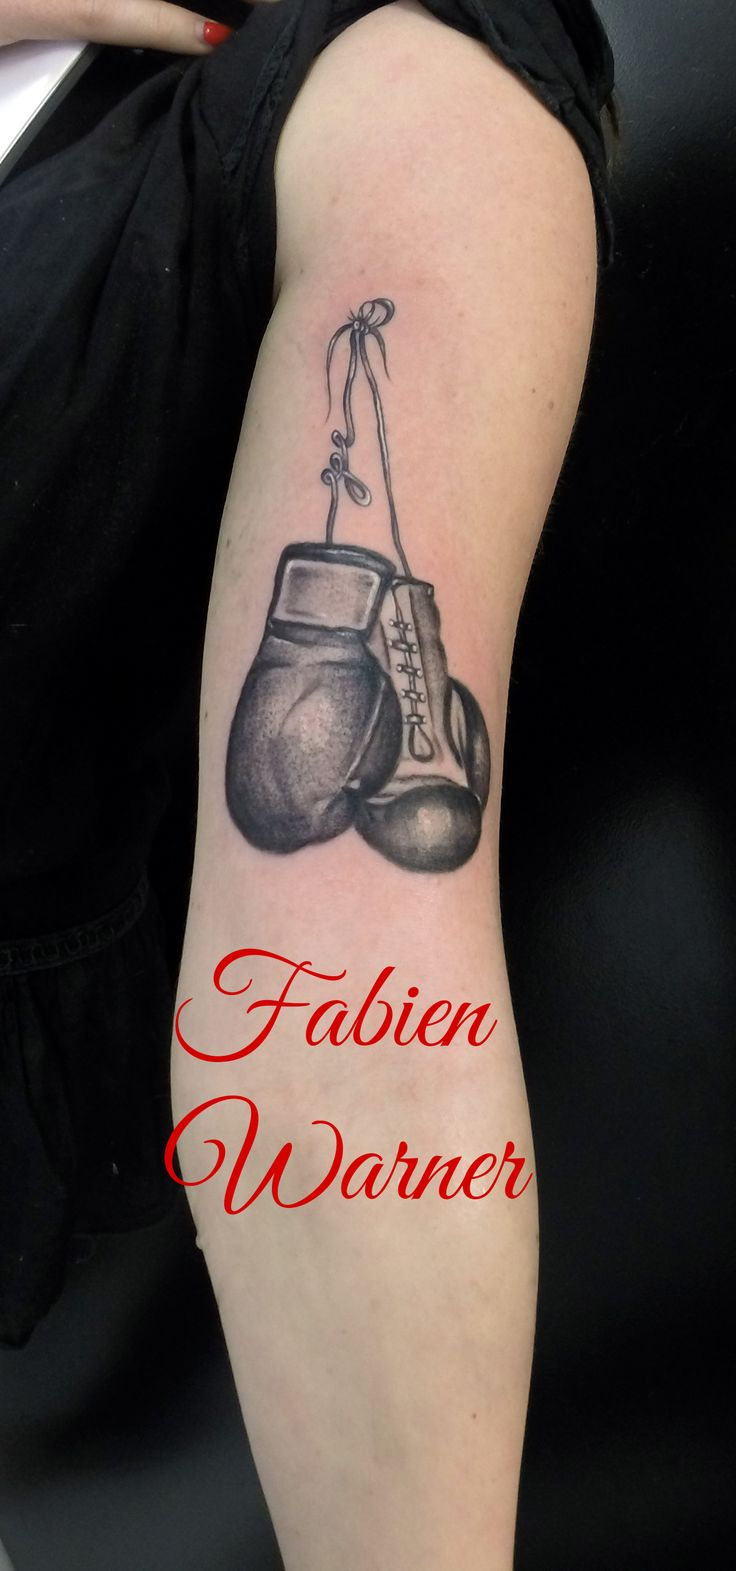 173 best Boxing Tattoo Designs images on Pinterest ...